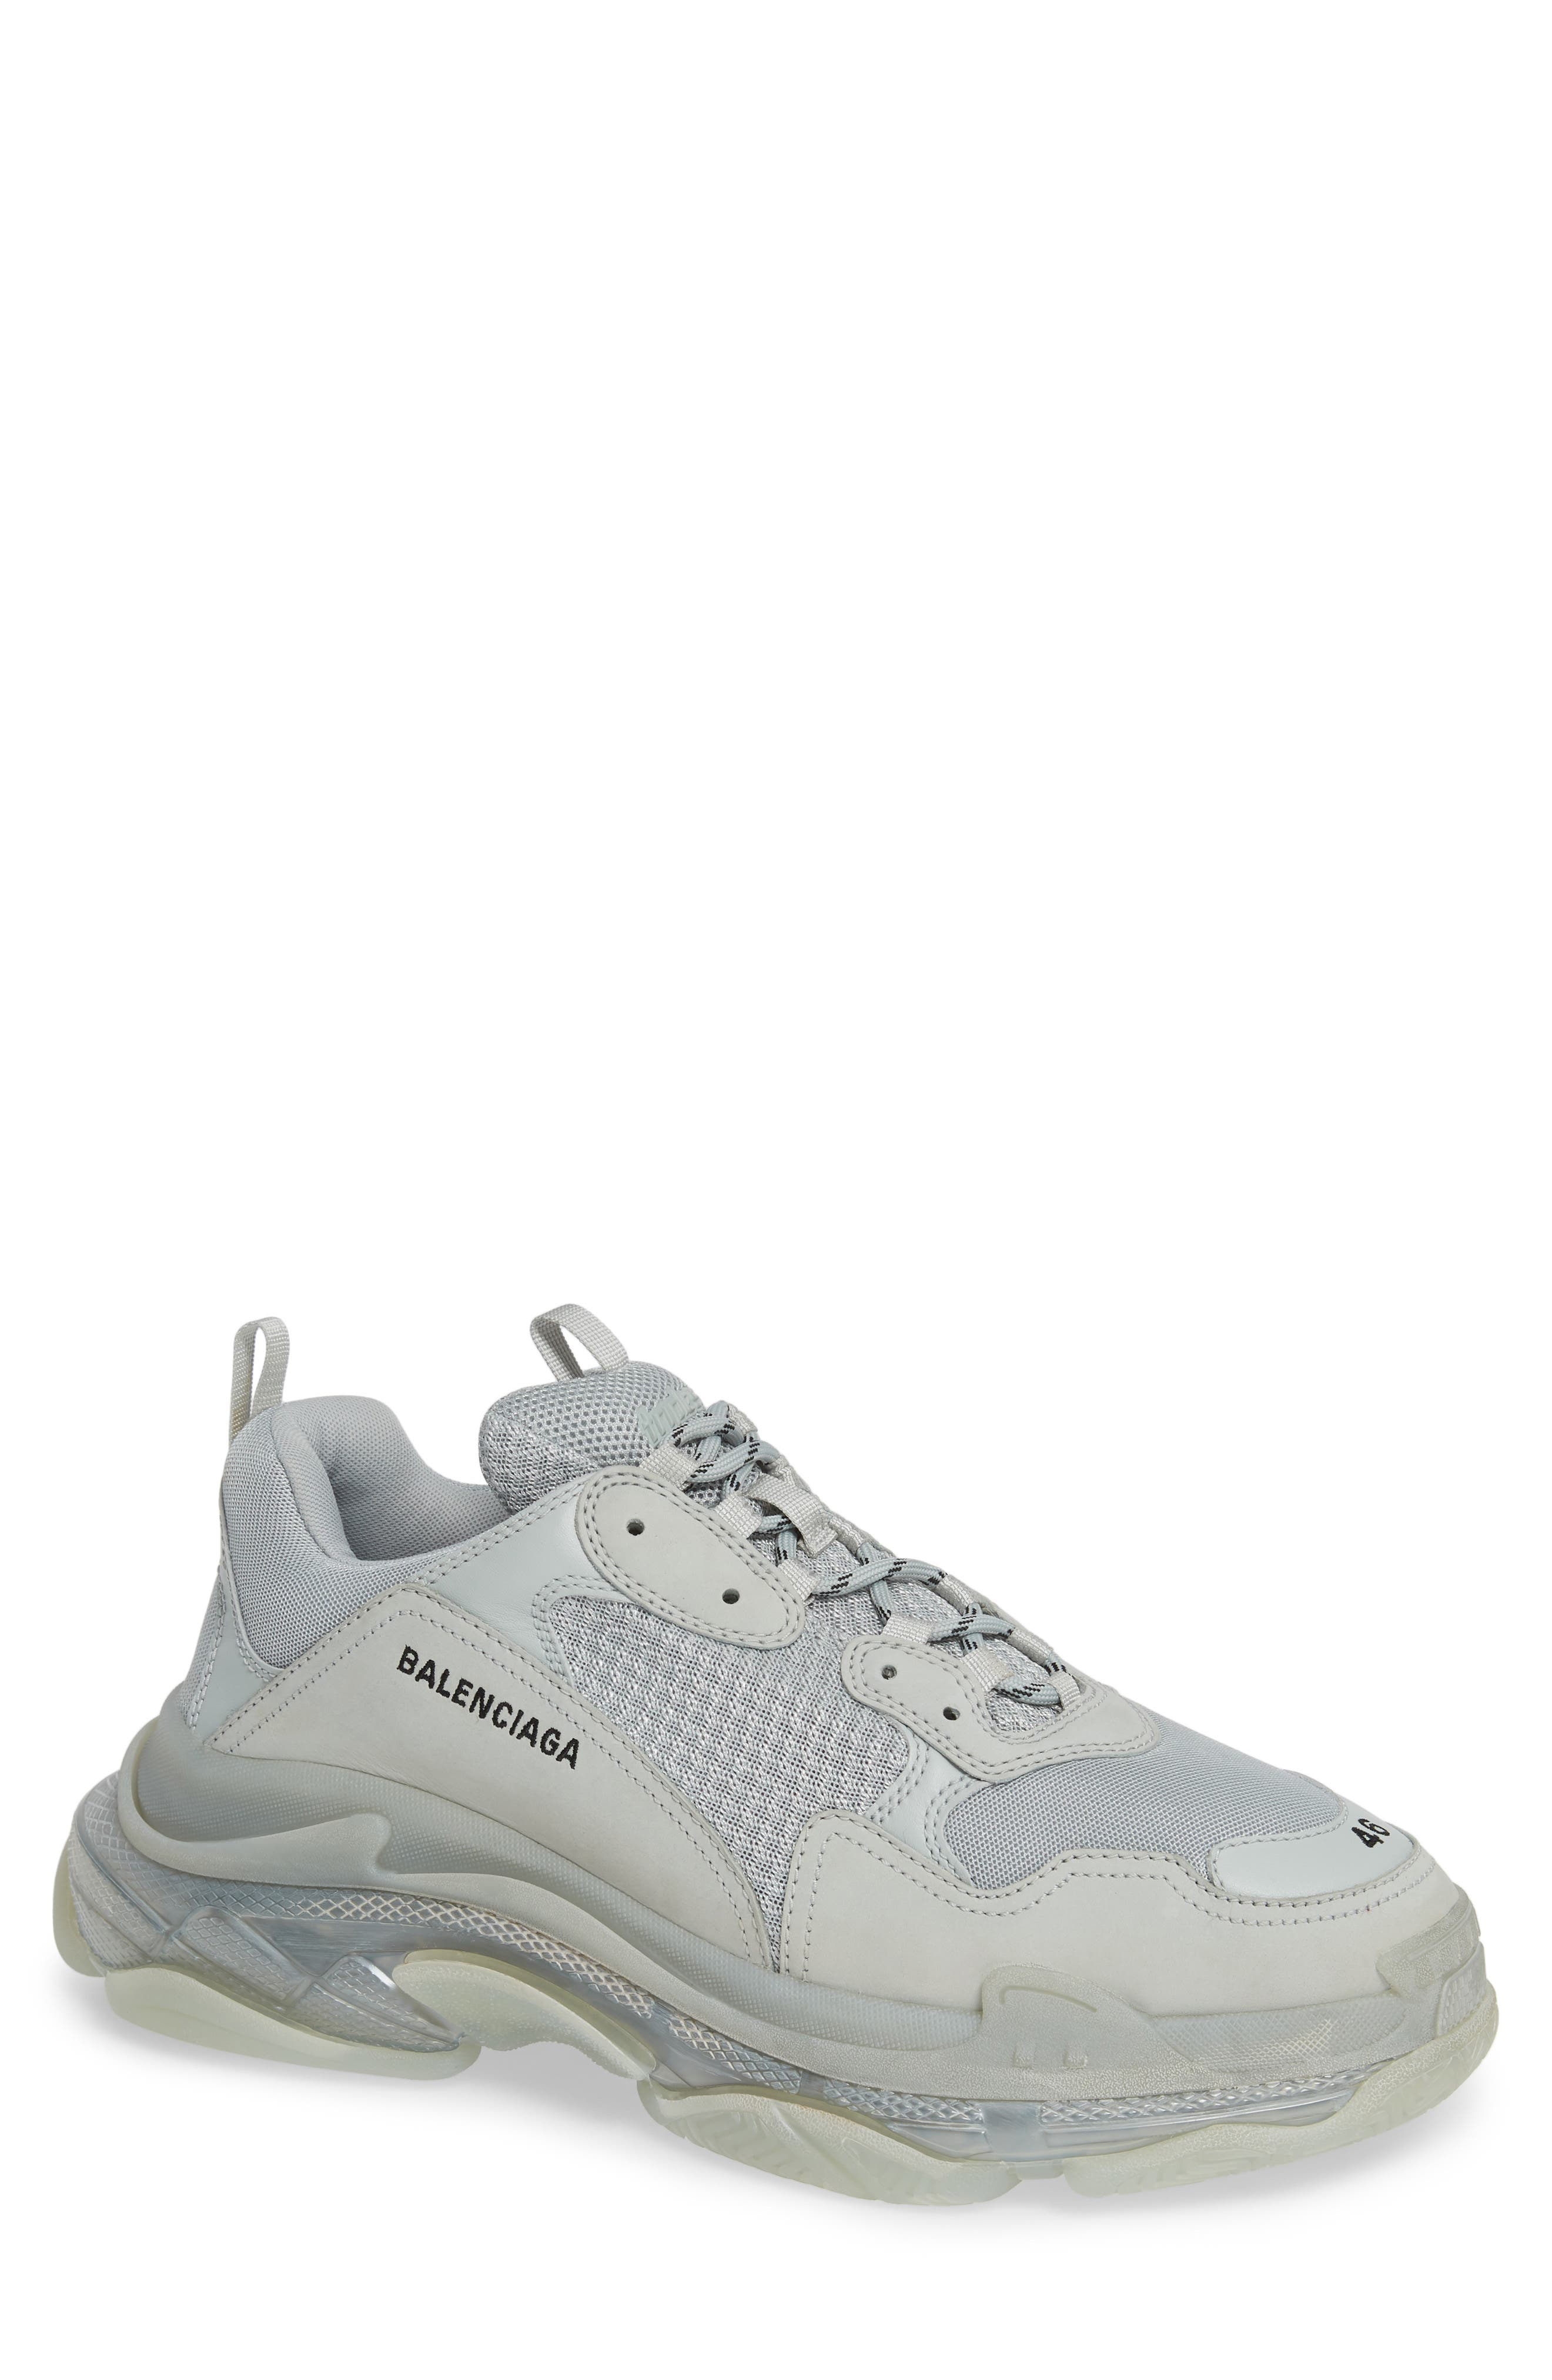 best website d61a5 b9a77 Men s Balenciaga Sneakers, Athletic   Running Shoes   Nordstrom